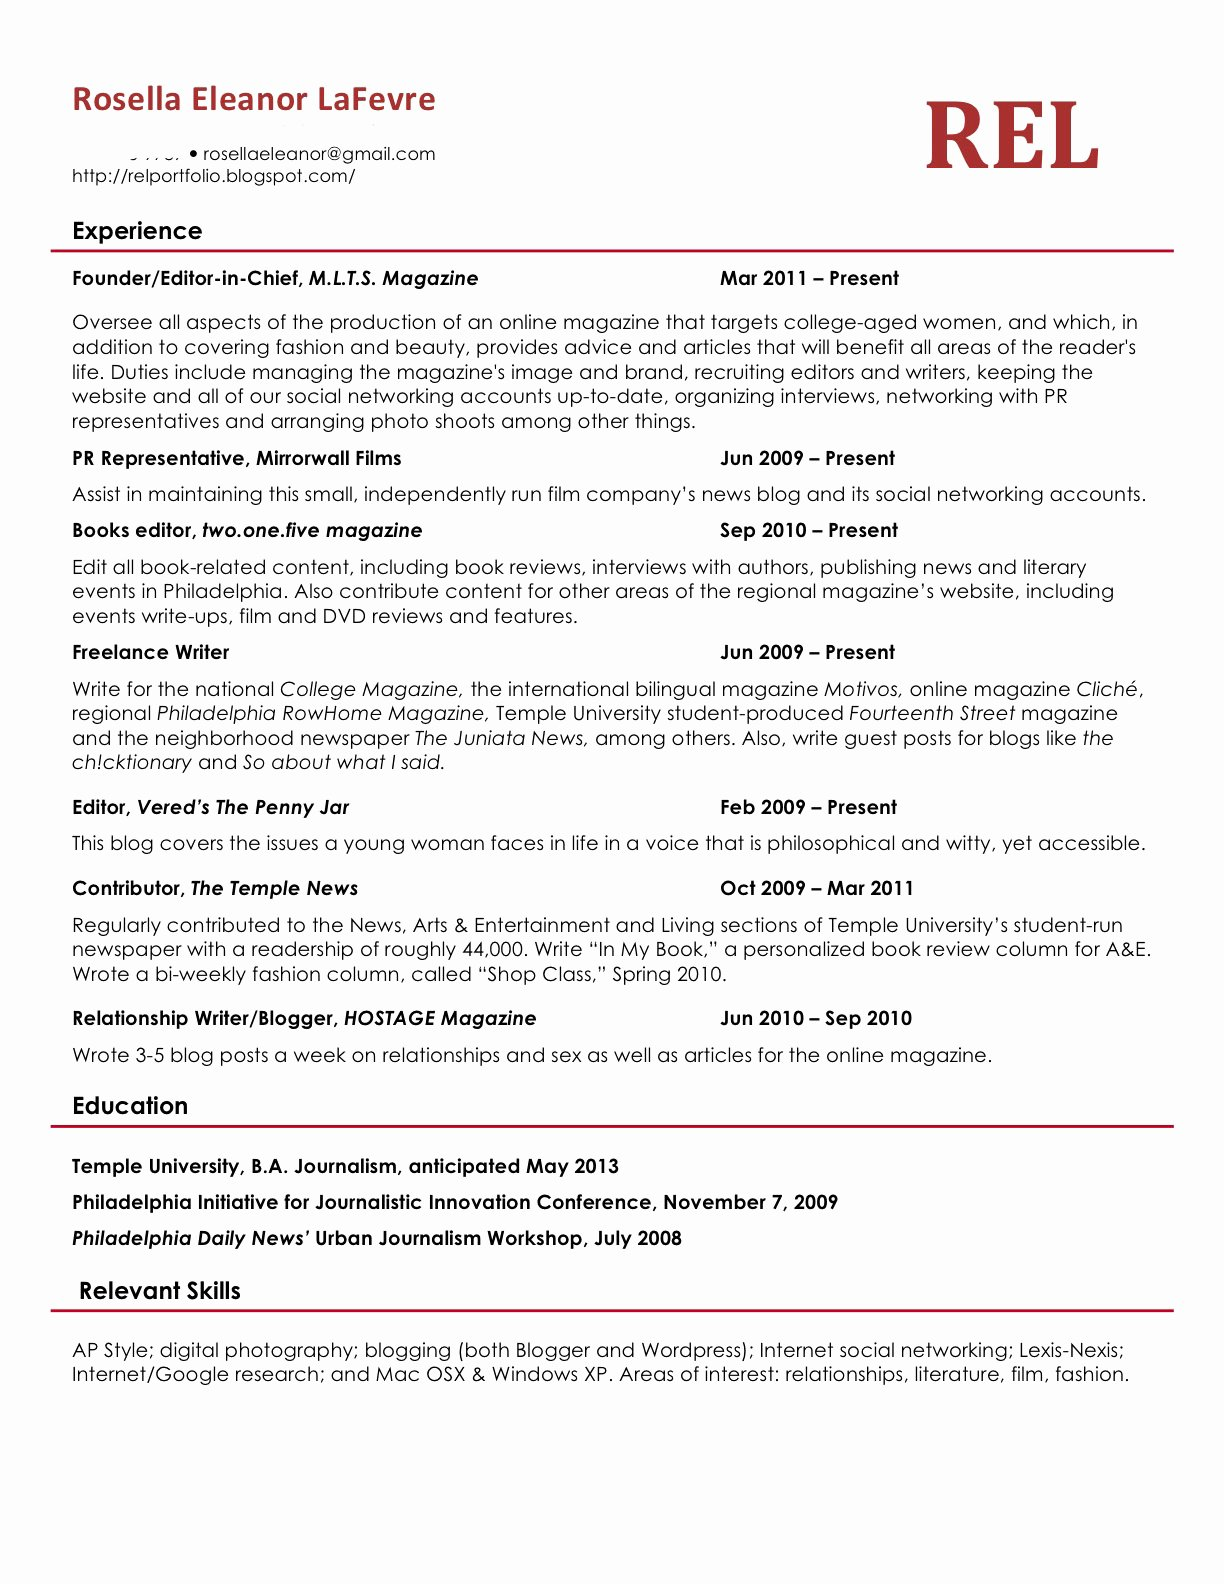 What A Resume Should Look Like In 2018